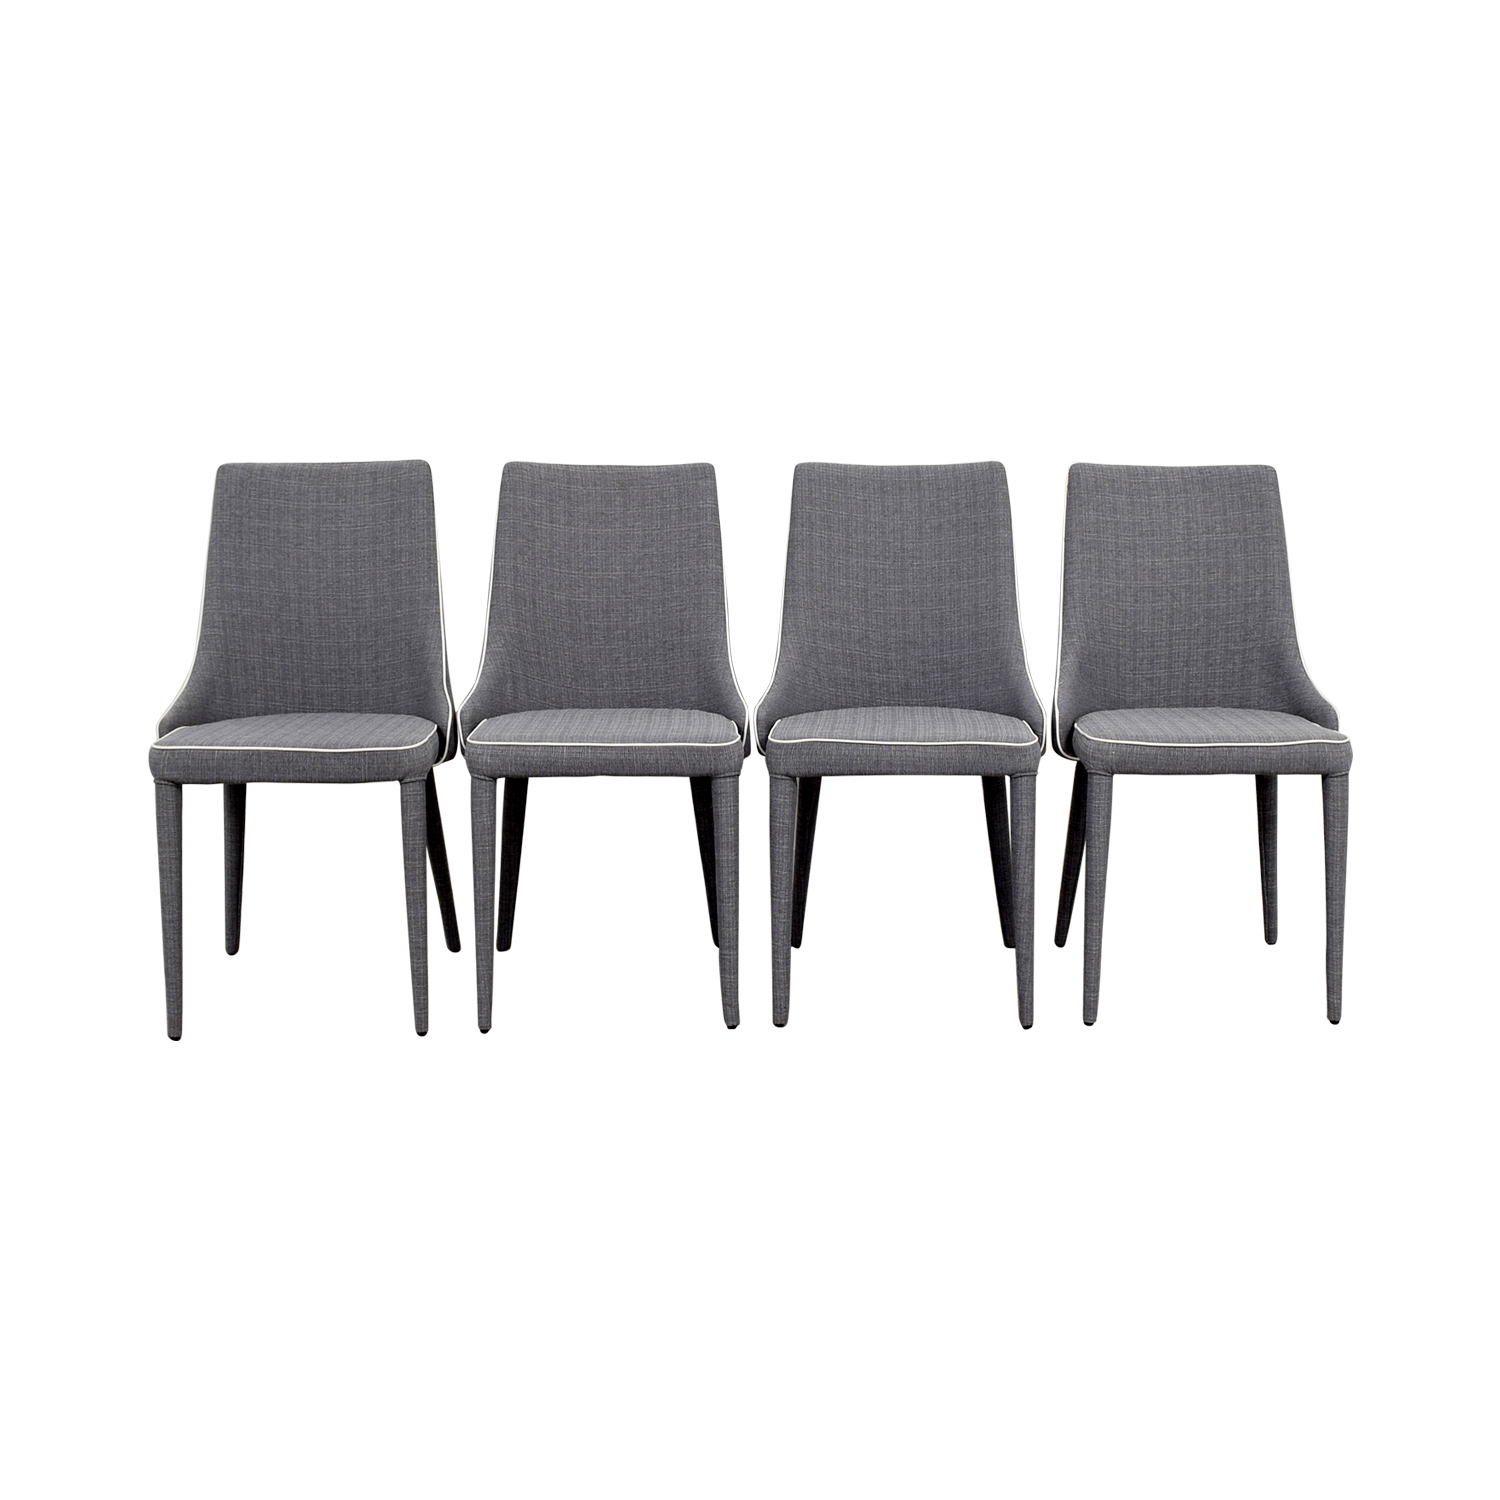 Inmod Inmod Gray Fabric Chairs Dining Chairs